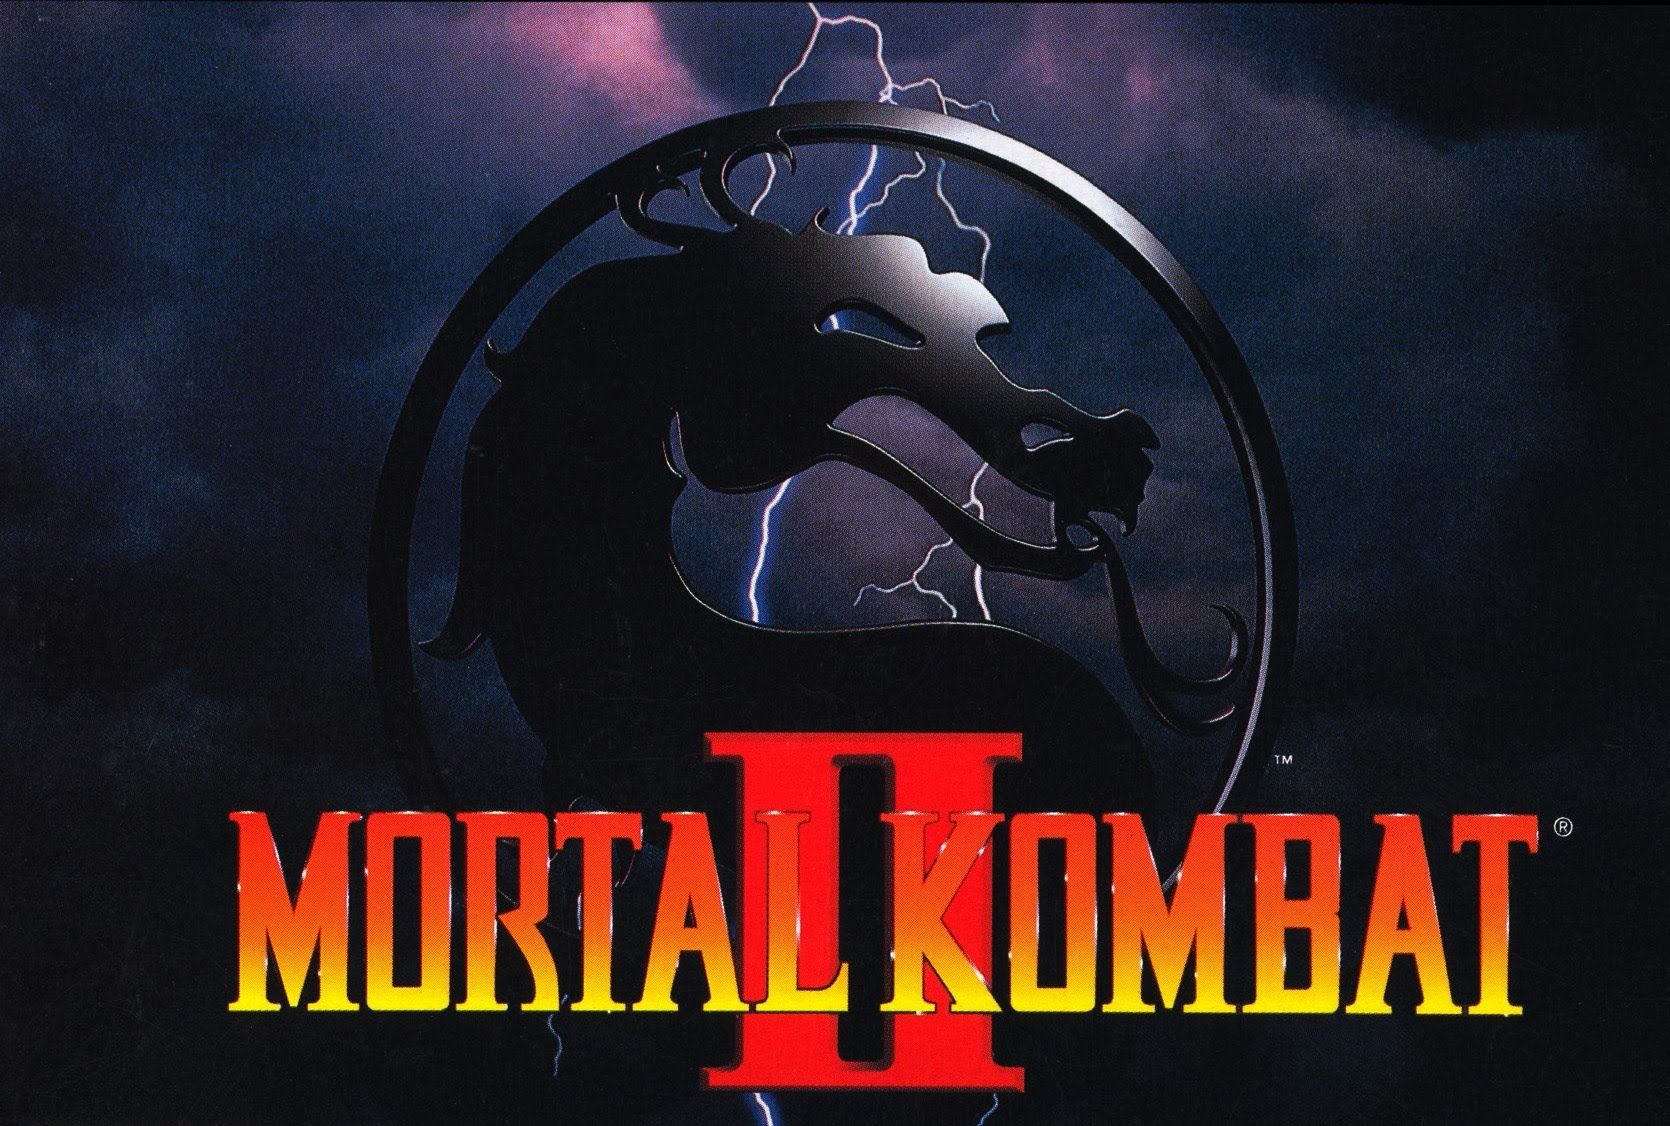 Mortal Kombat 2 Wallpapers Top Free Mortal Kombat 2 Backgrounds